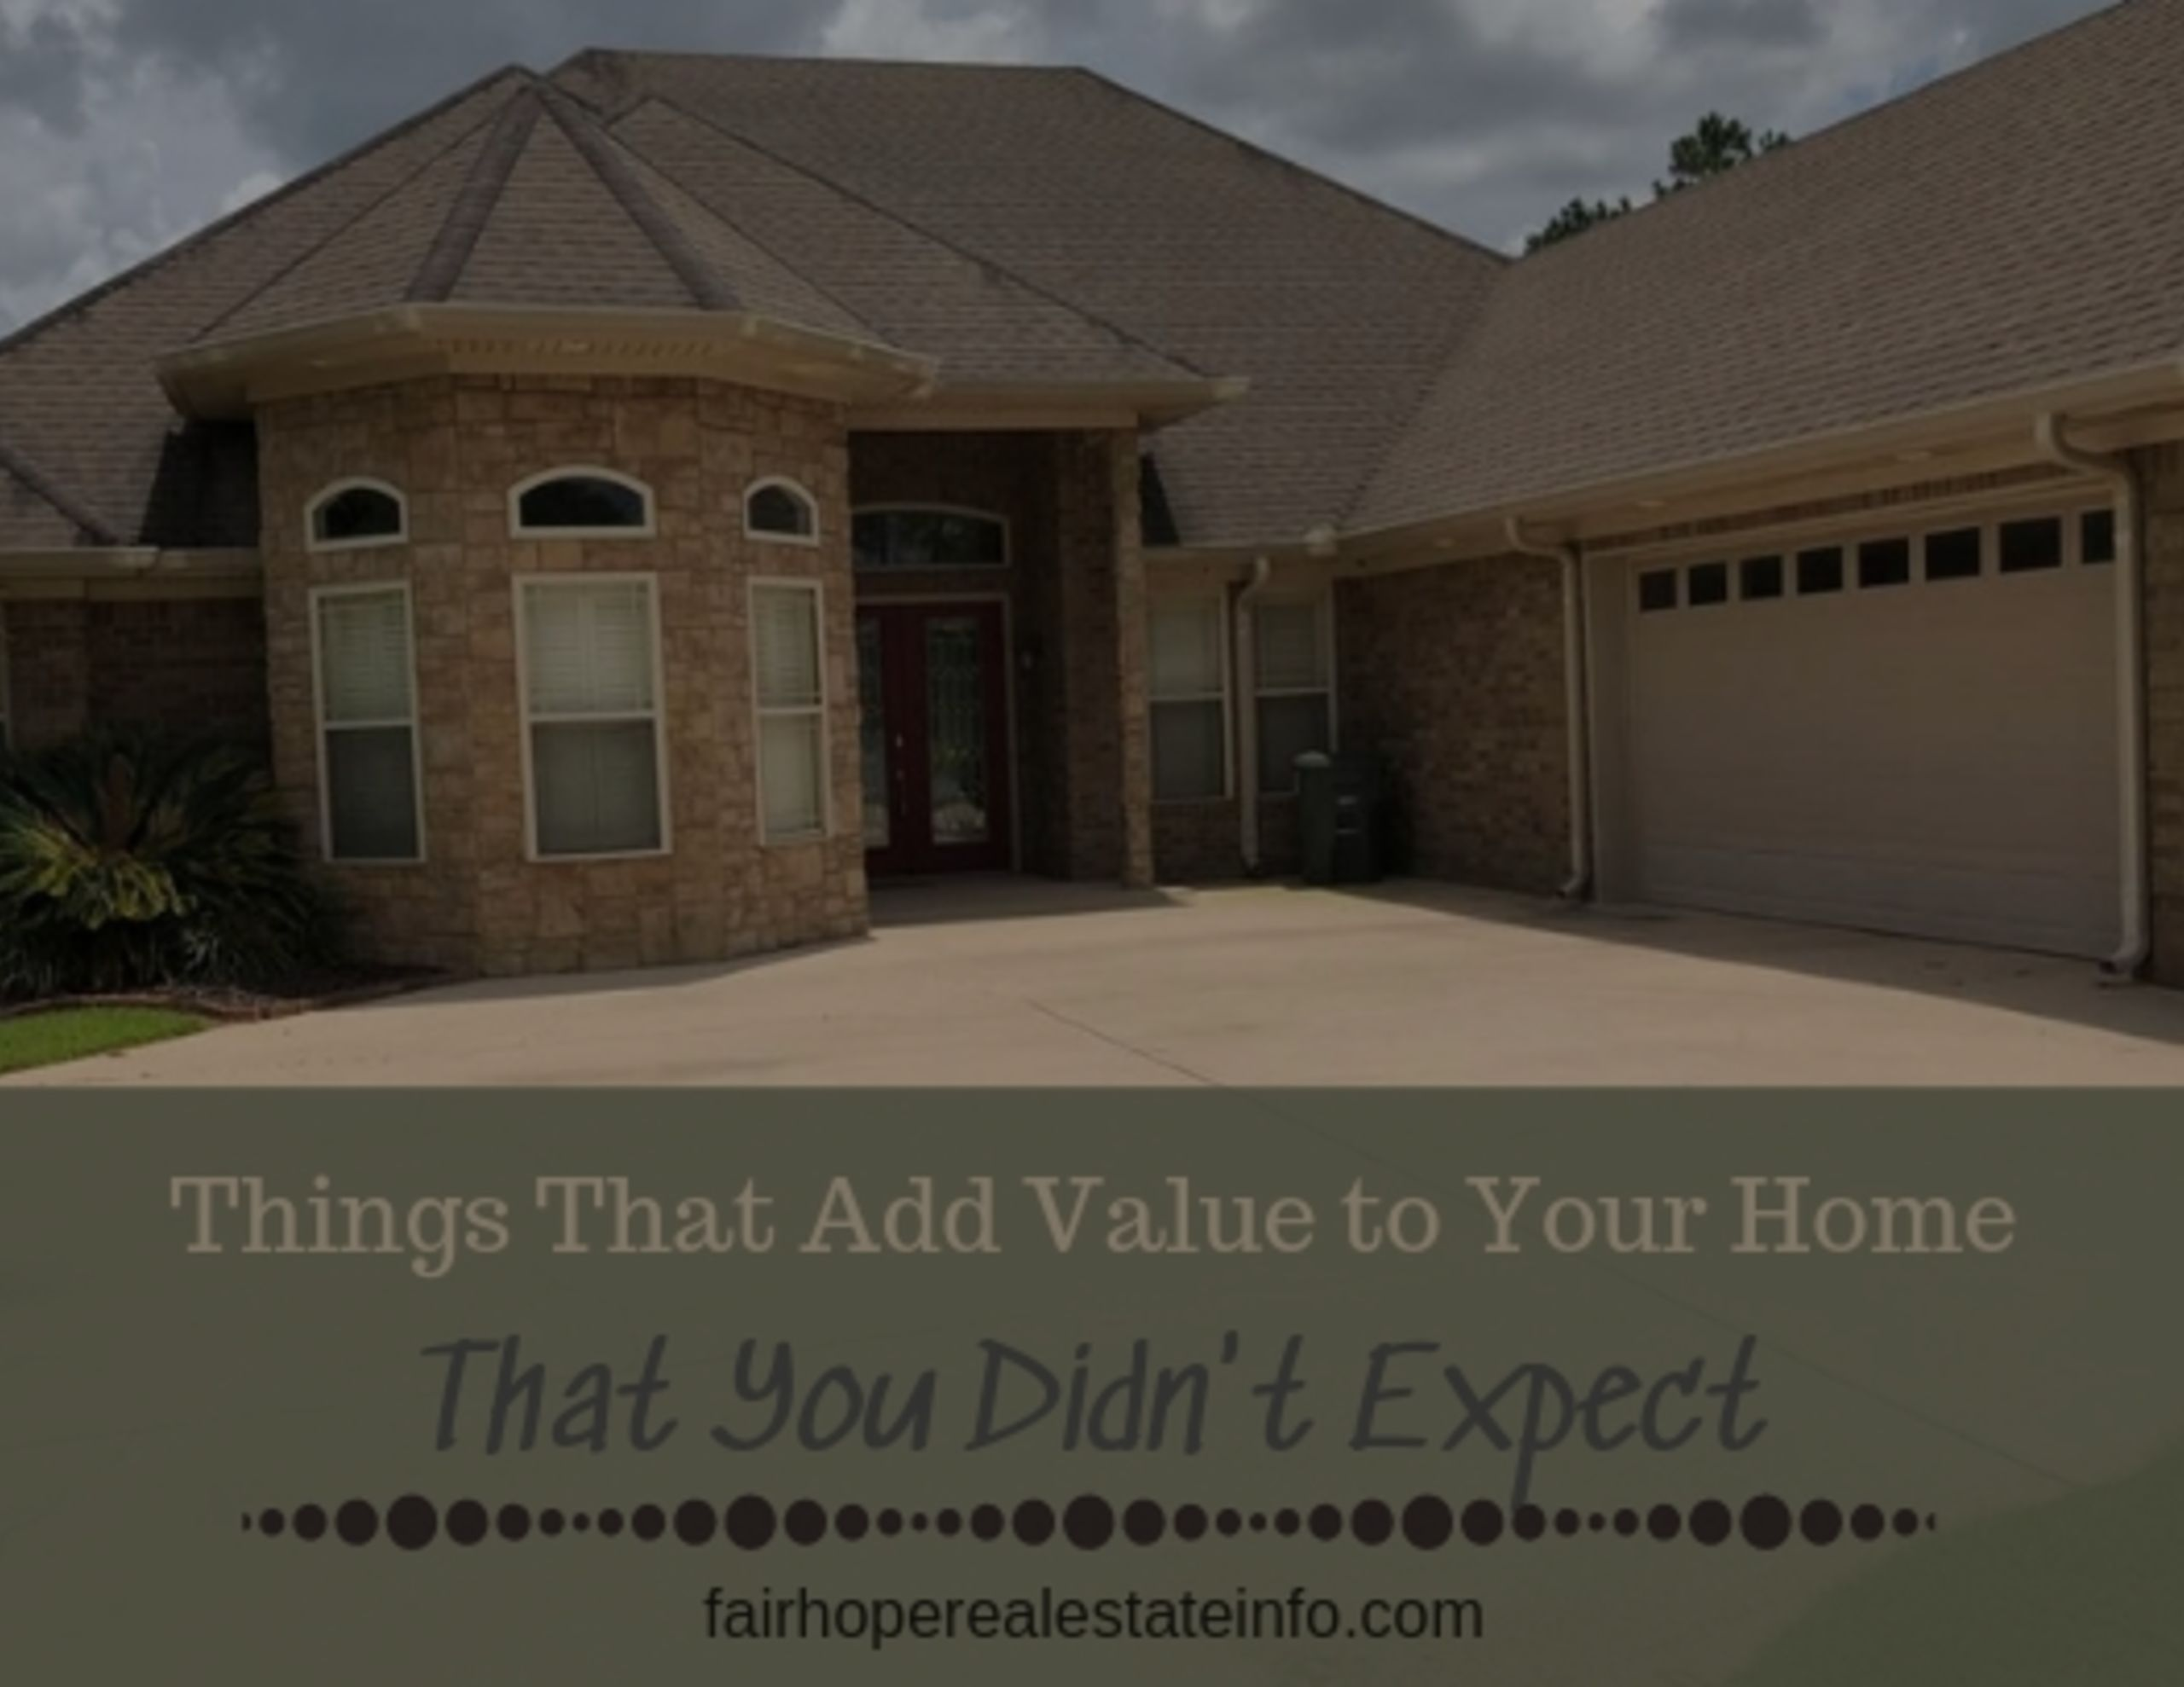 Things That Add Value to Your Home That You Didn't Expect